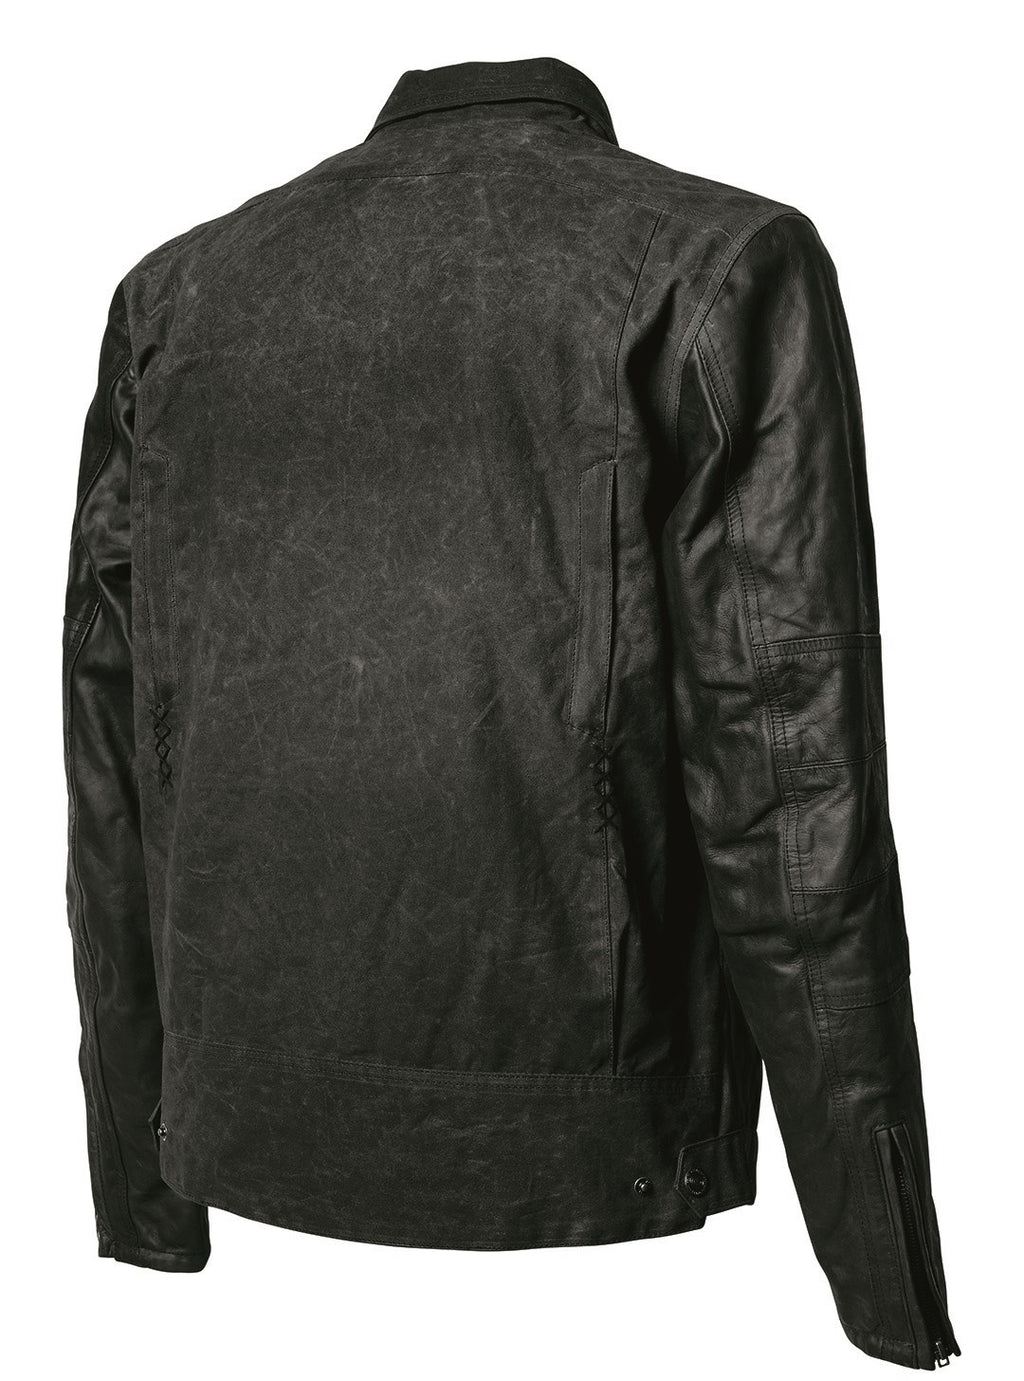 RSD (Roland Sands Design) Johnny Jacket - Black